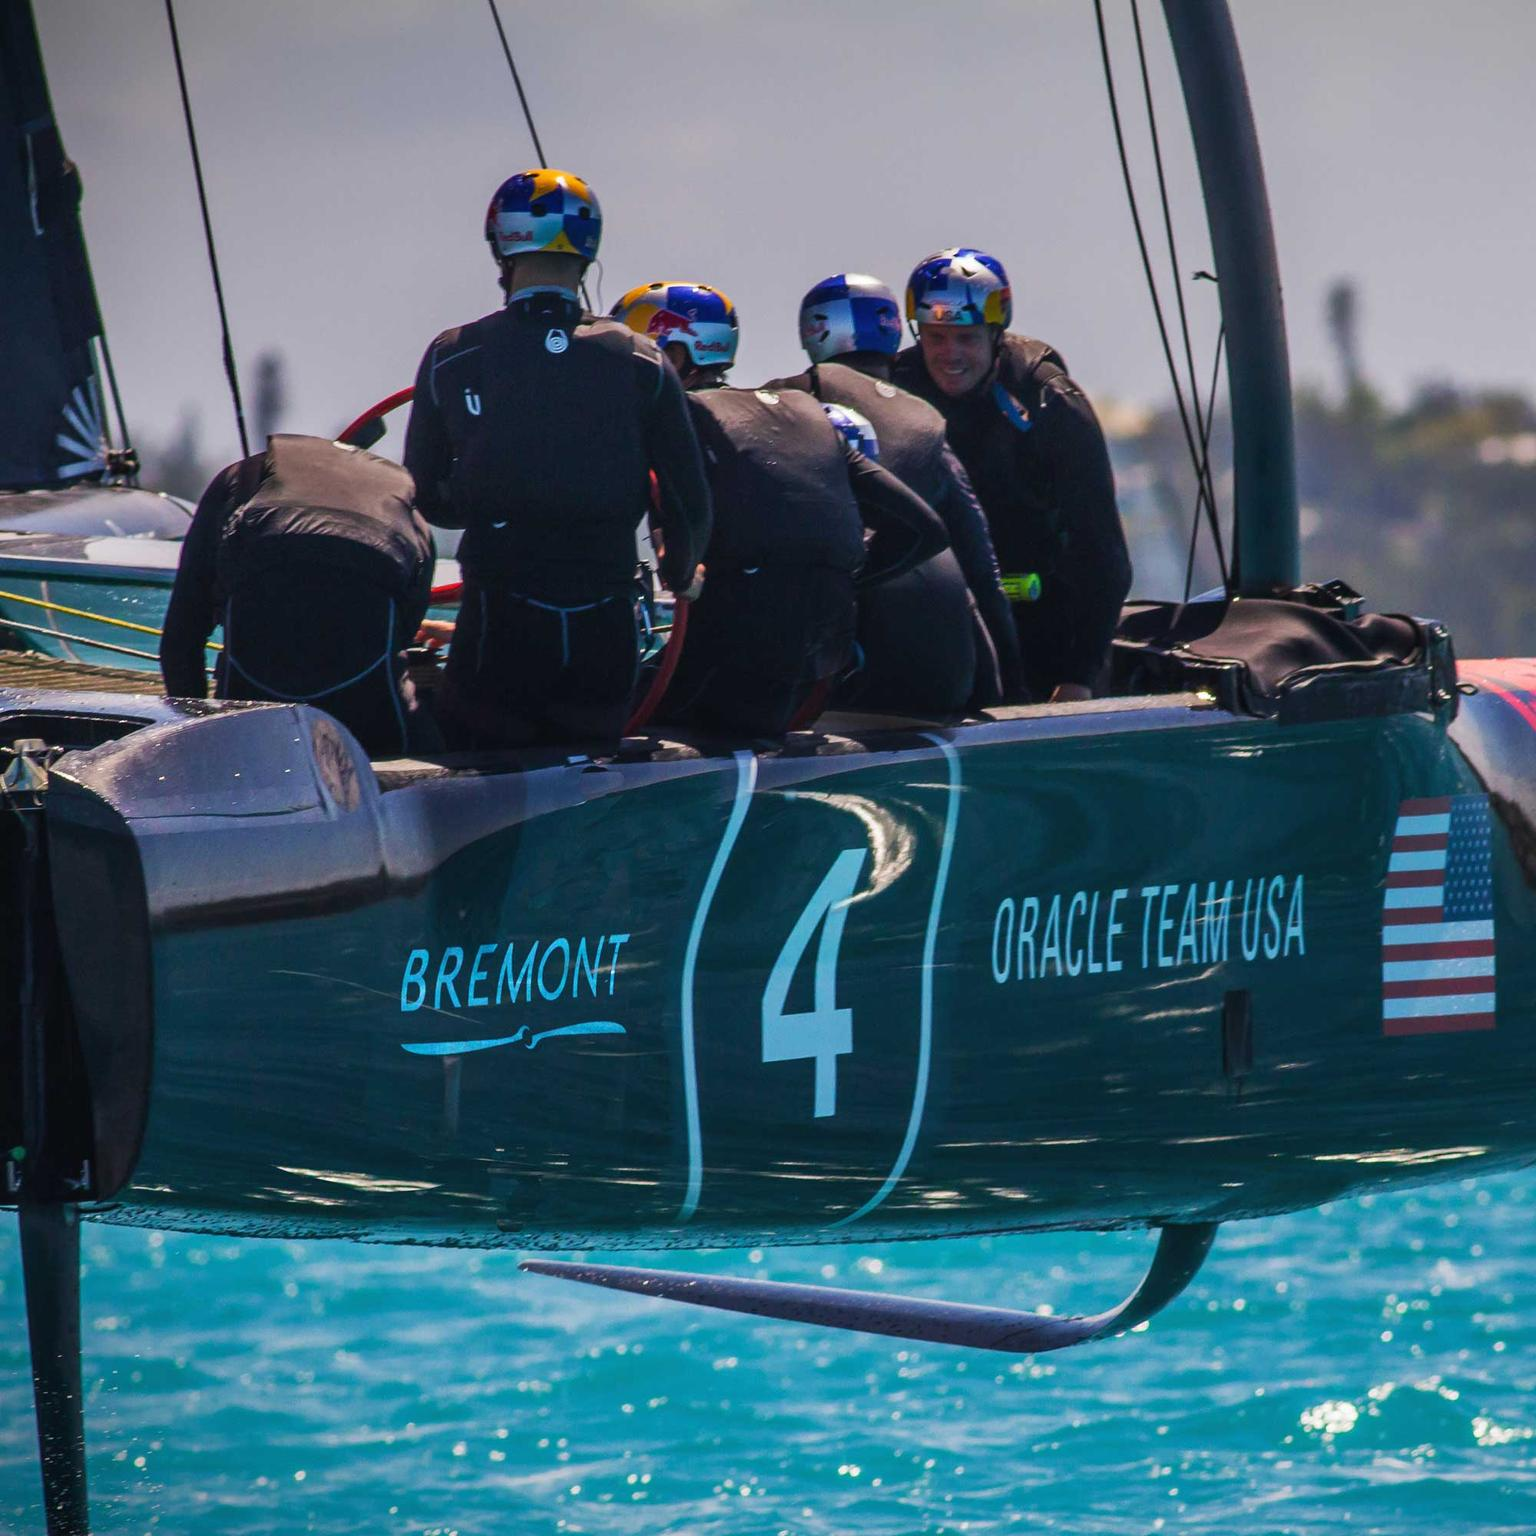 Bremont - official timing partner of ORACLE TEAM USA